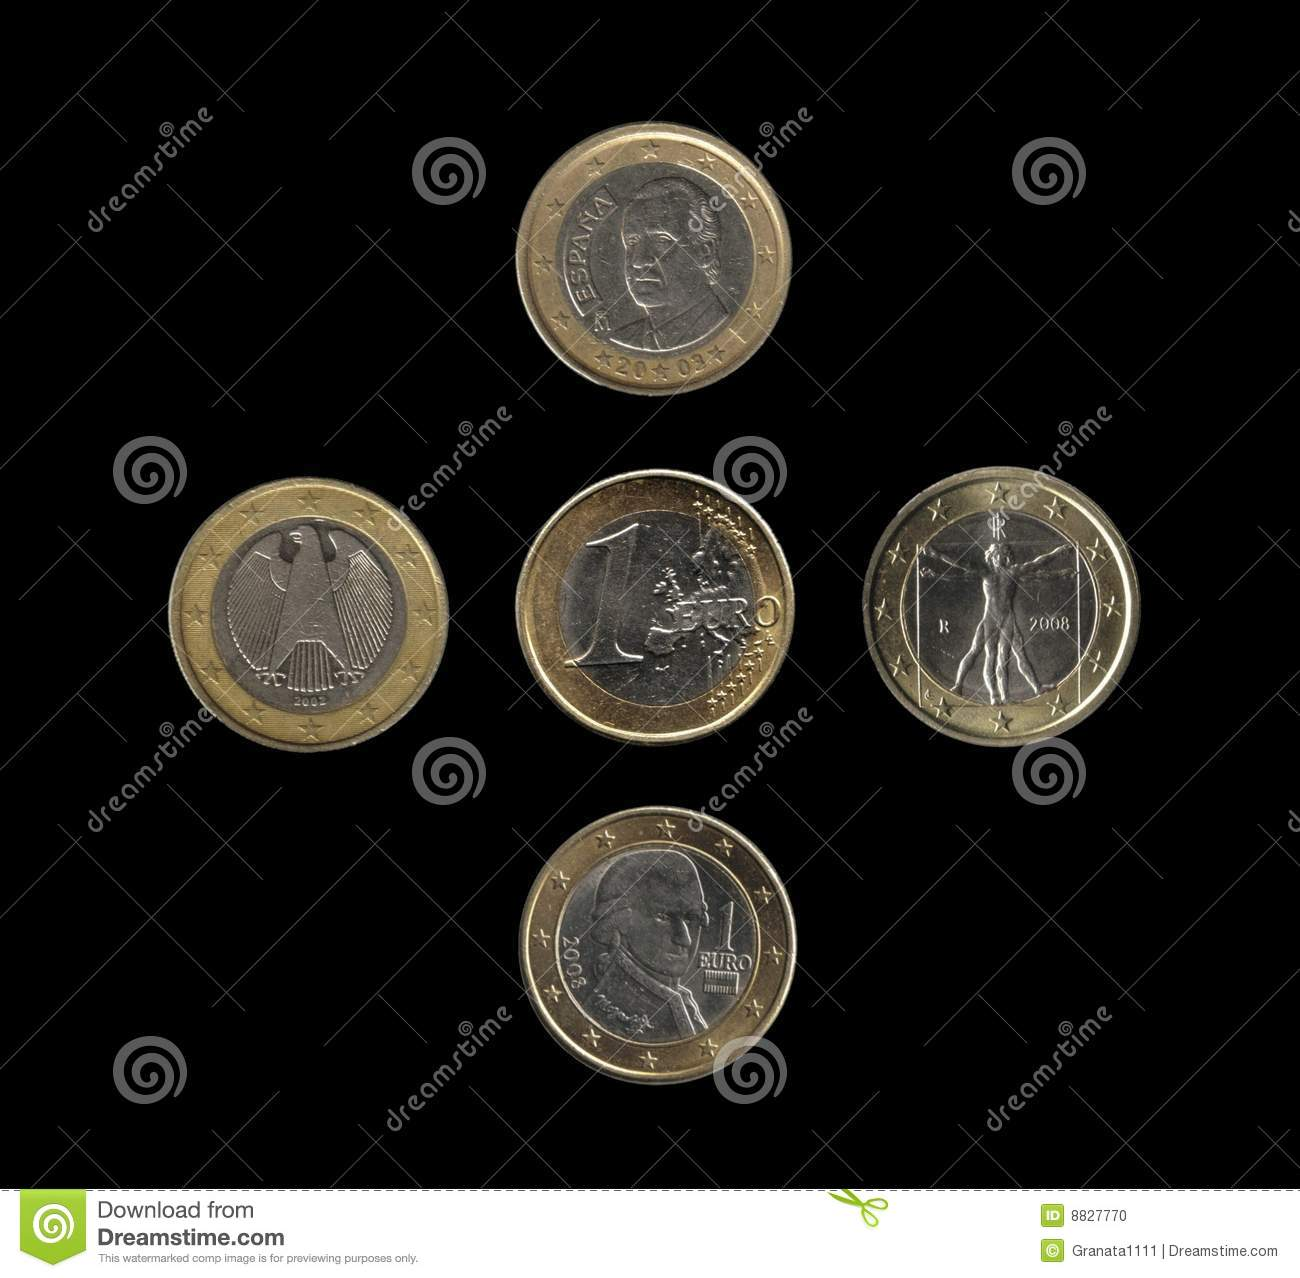 Euro coins, 4 nations